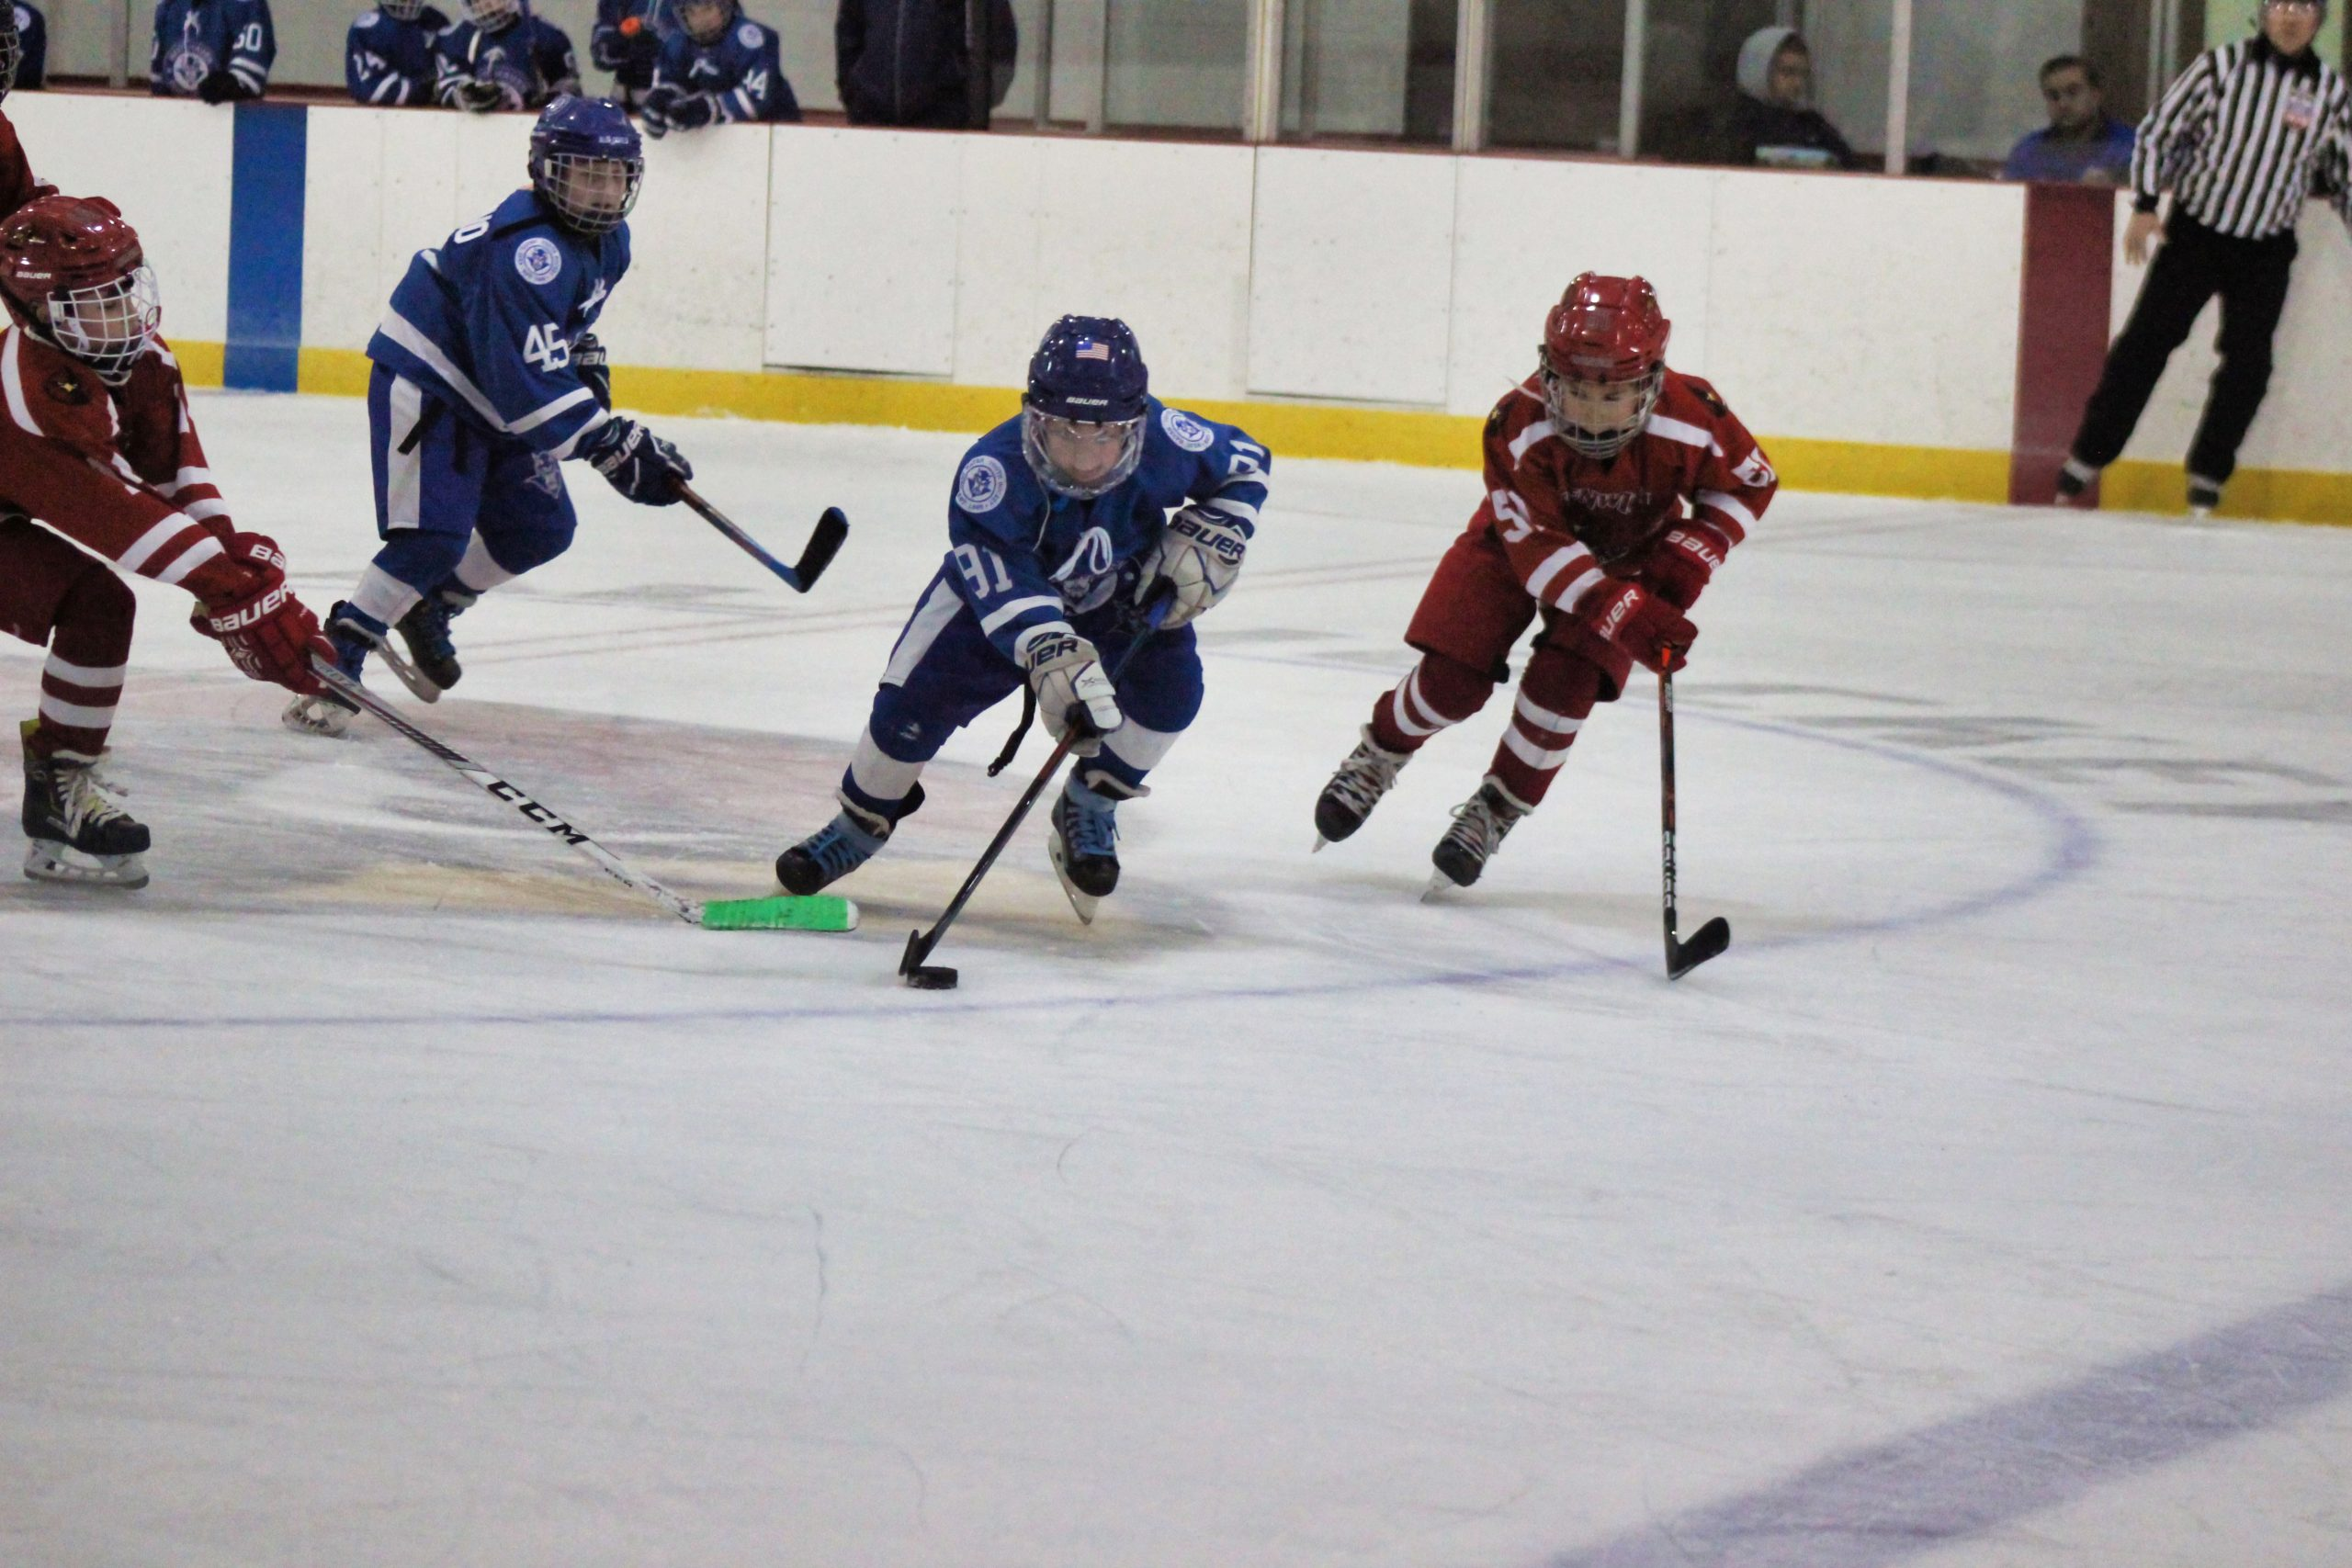 Mite C team loses to Wallingford